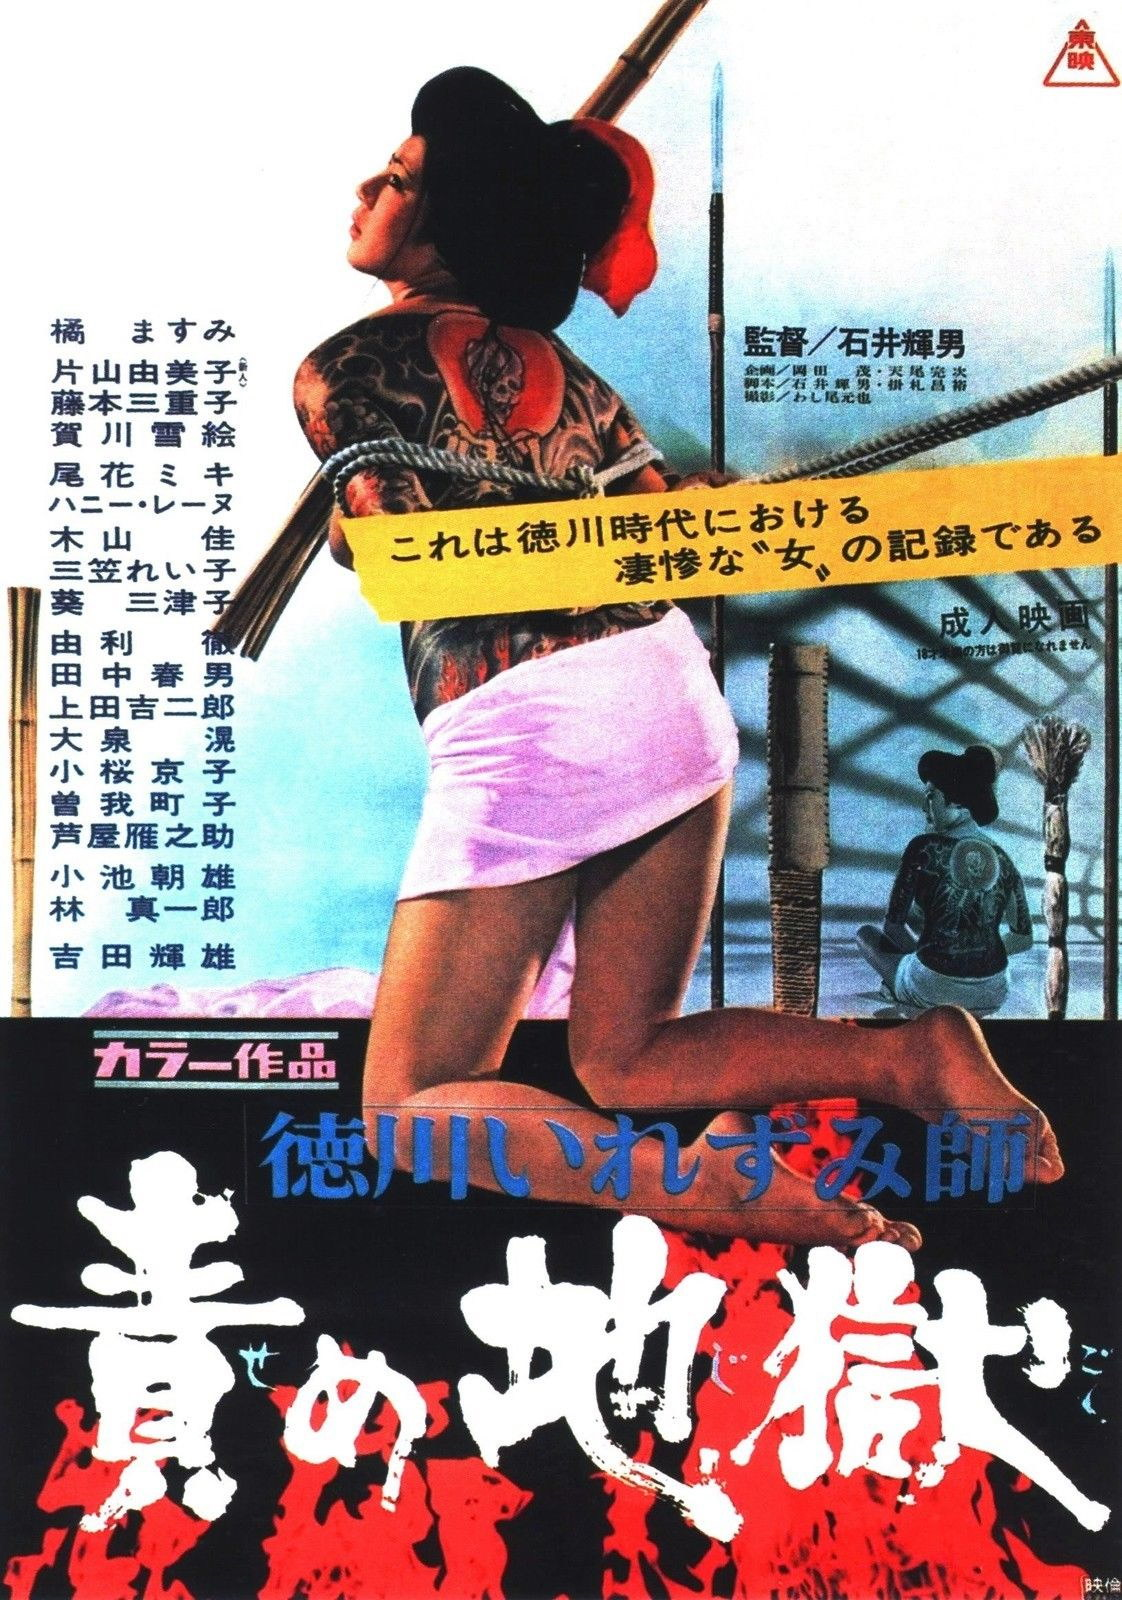 73946-INERNO-OF-TORTURE-Movie-RARE-Japanese-Horror-Wall-Print-Poster-Affiche